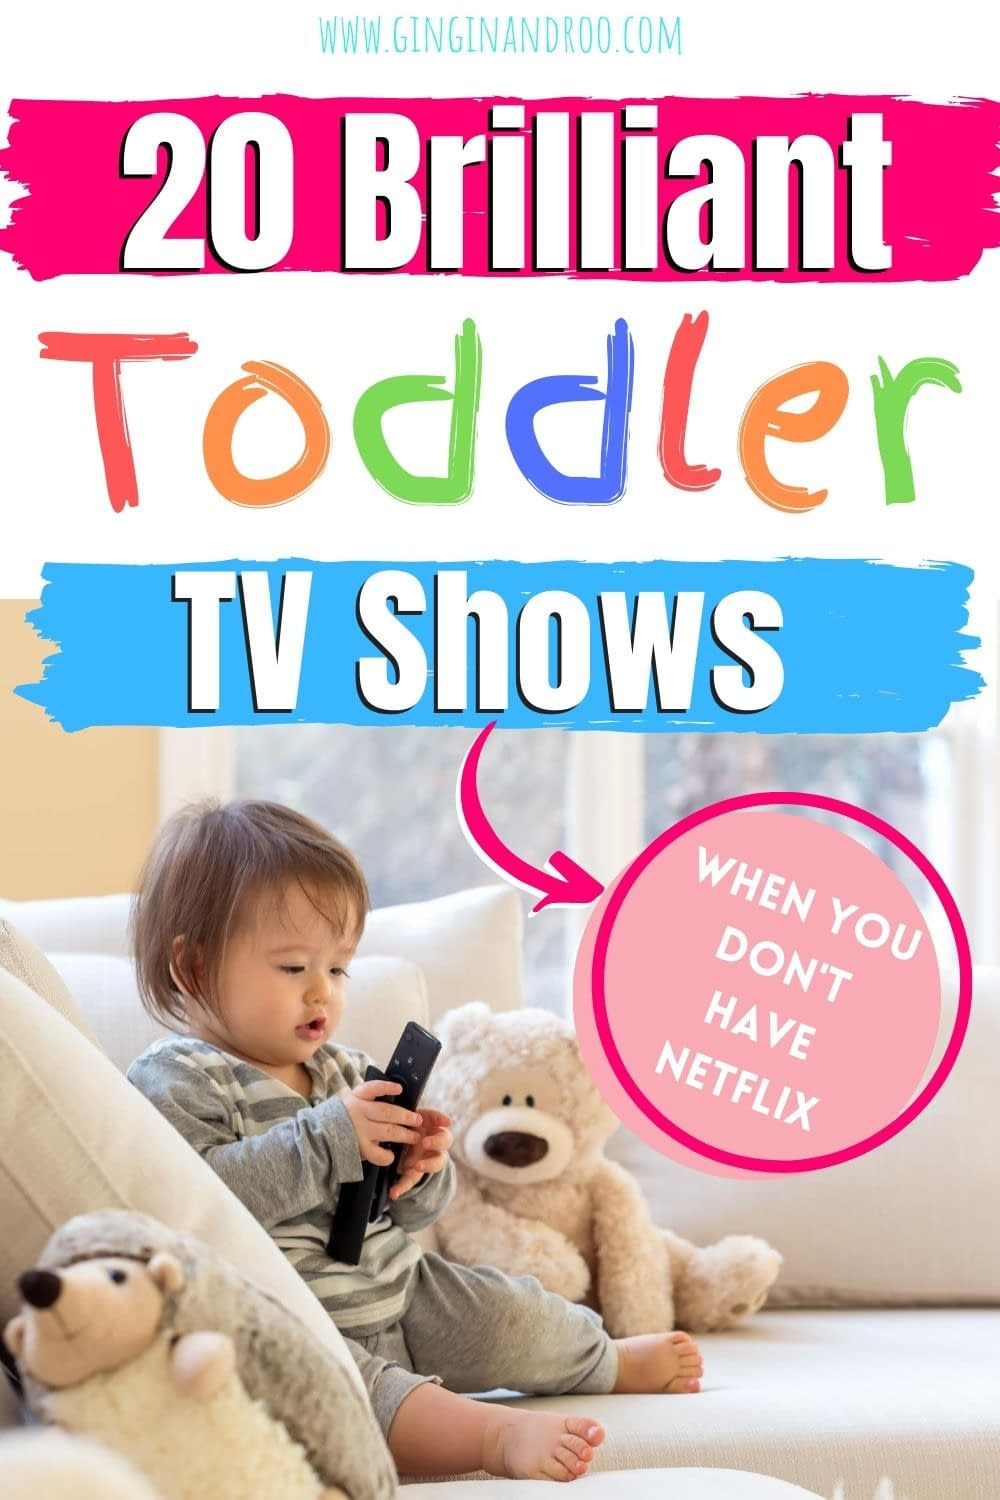 Don't have Netflix but want great toddler TV shows? Here's 20 brilliant toddler TV shows that will help with your child's learning and development for free #toddlertips #toddlerTVshows #toddlerparenting